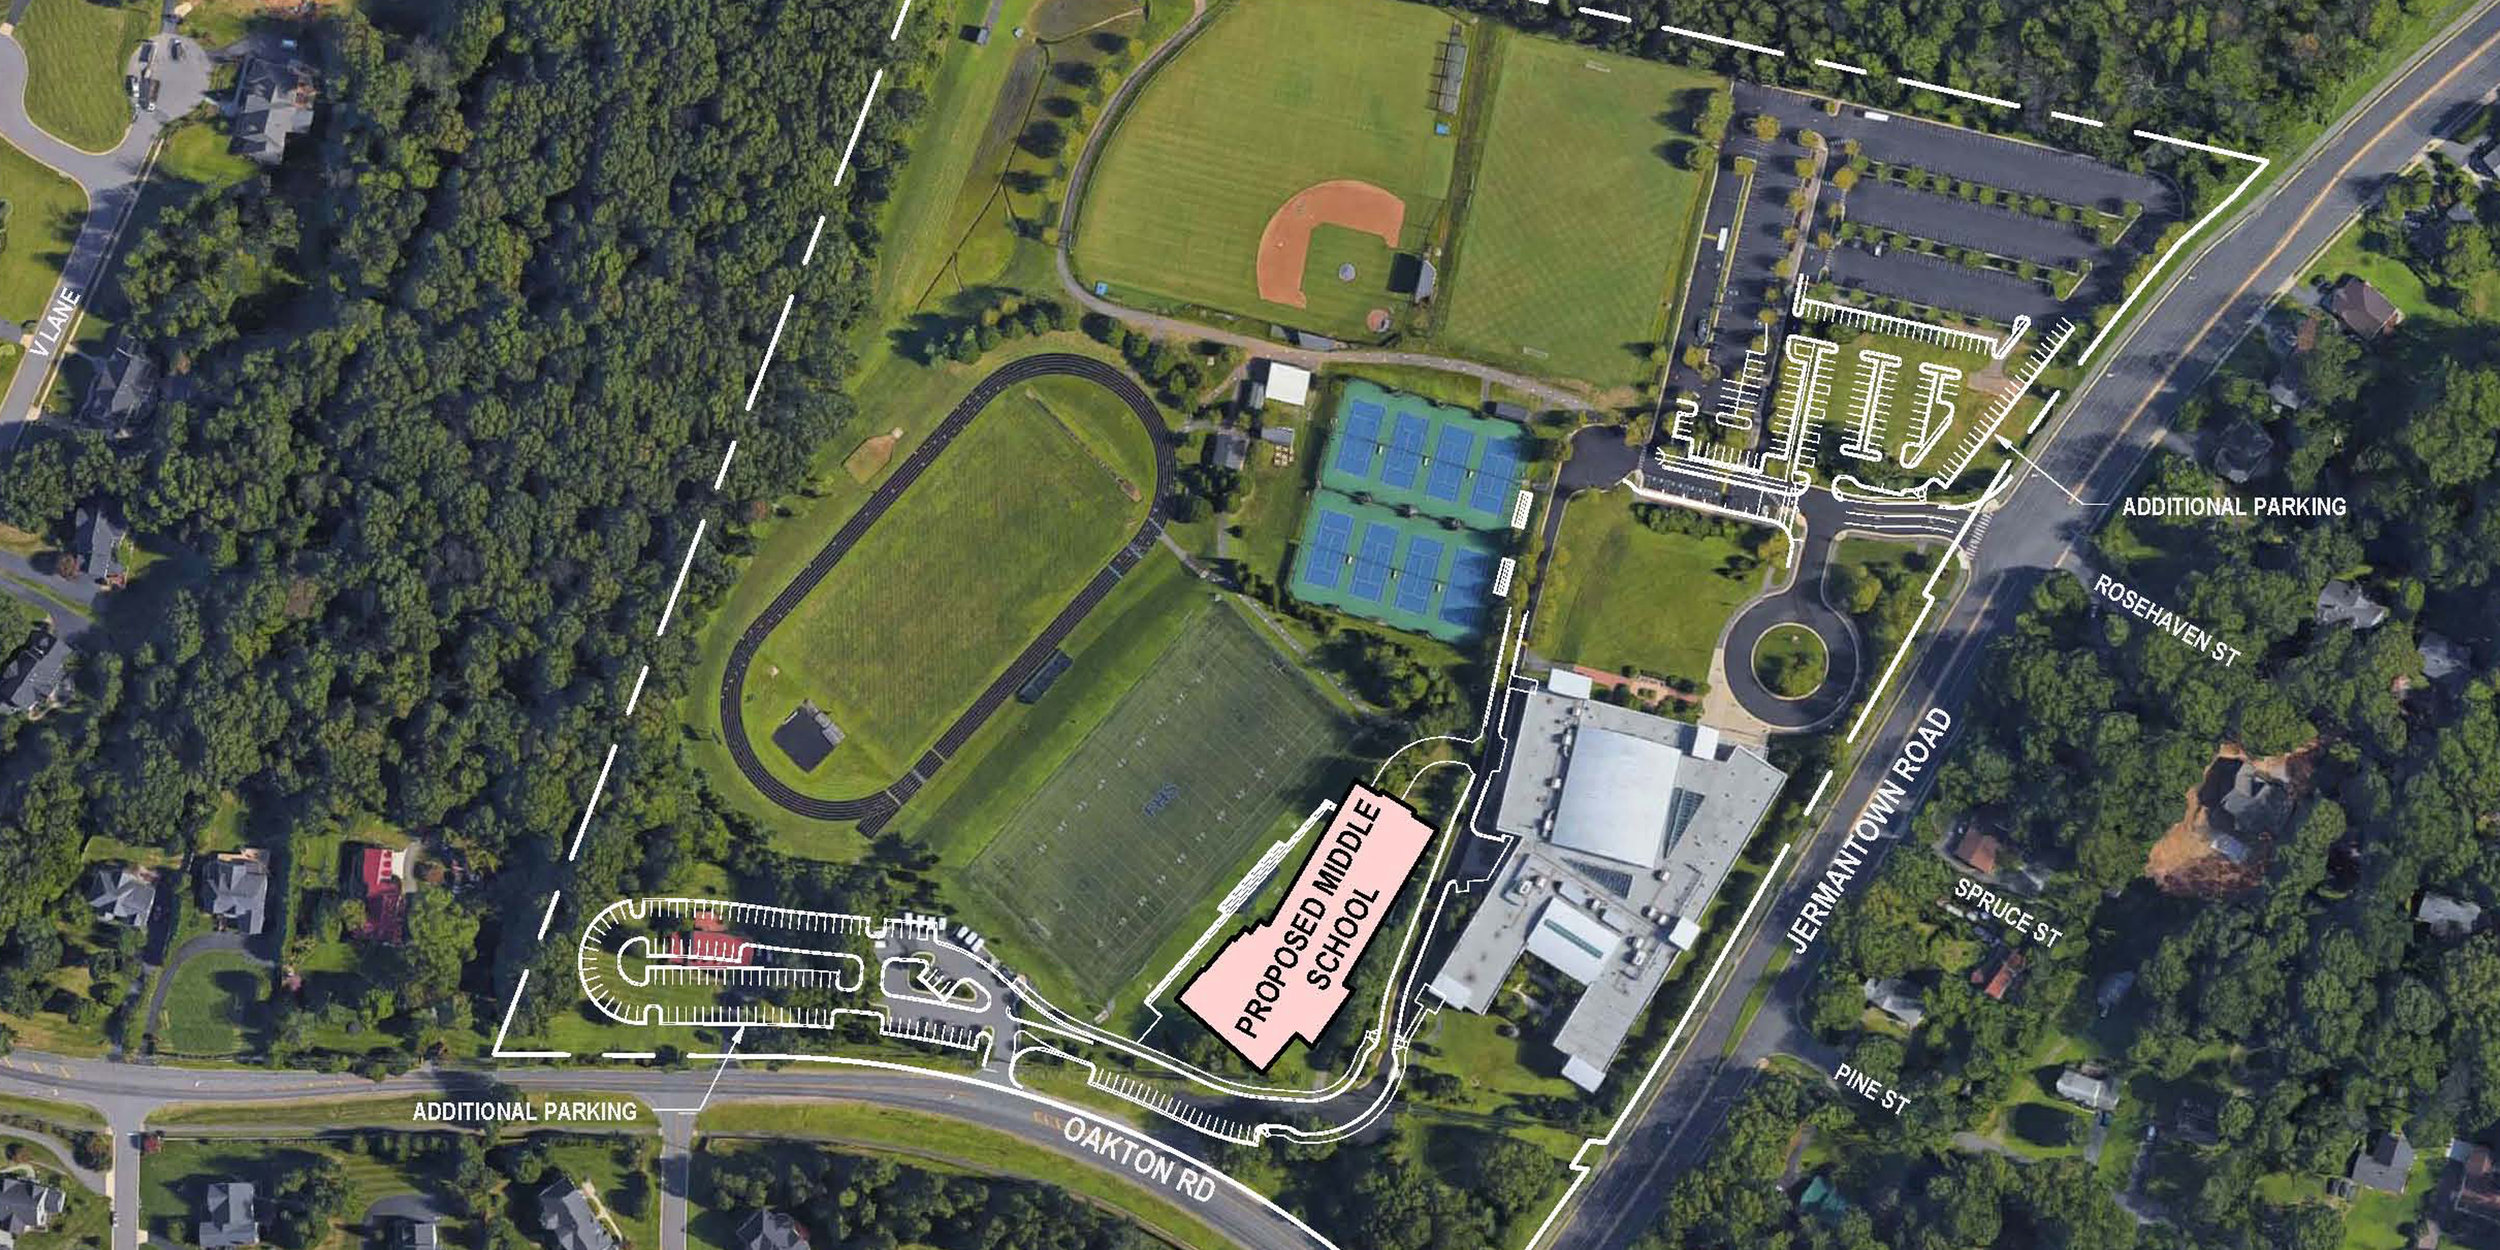 Site plan  showing the location of the new Middle School building, new parking off Oakton Road, and additional parking below the Upper School off Jermantown Road.